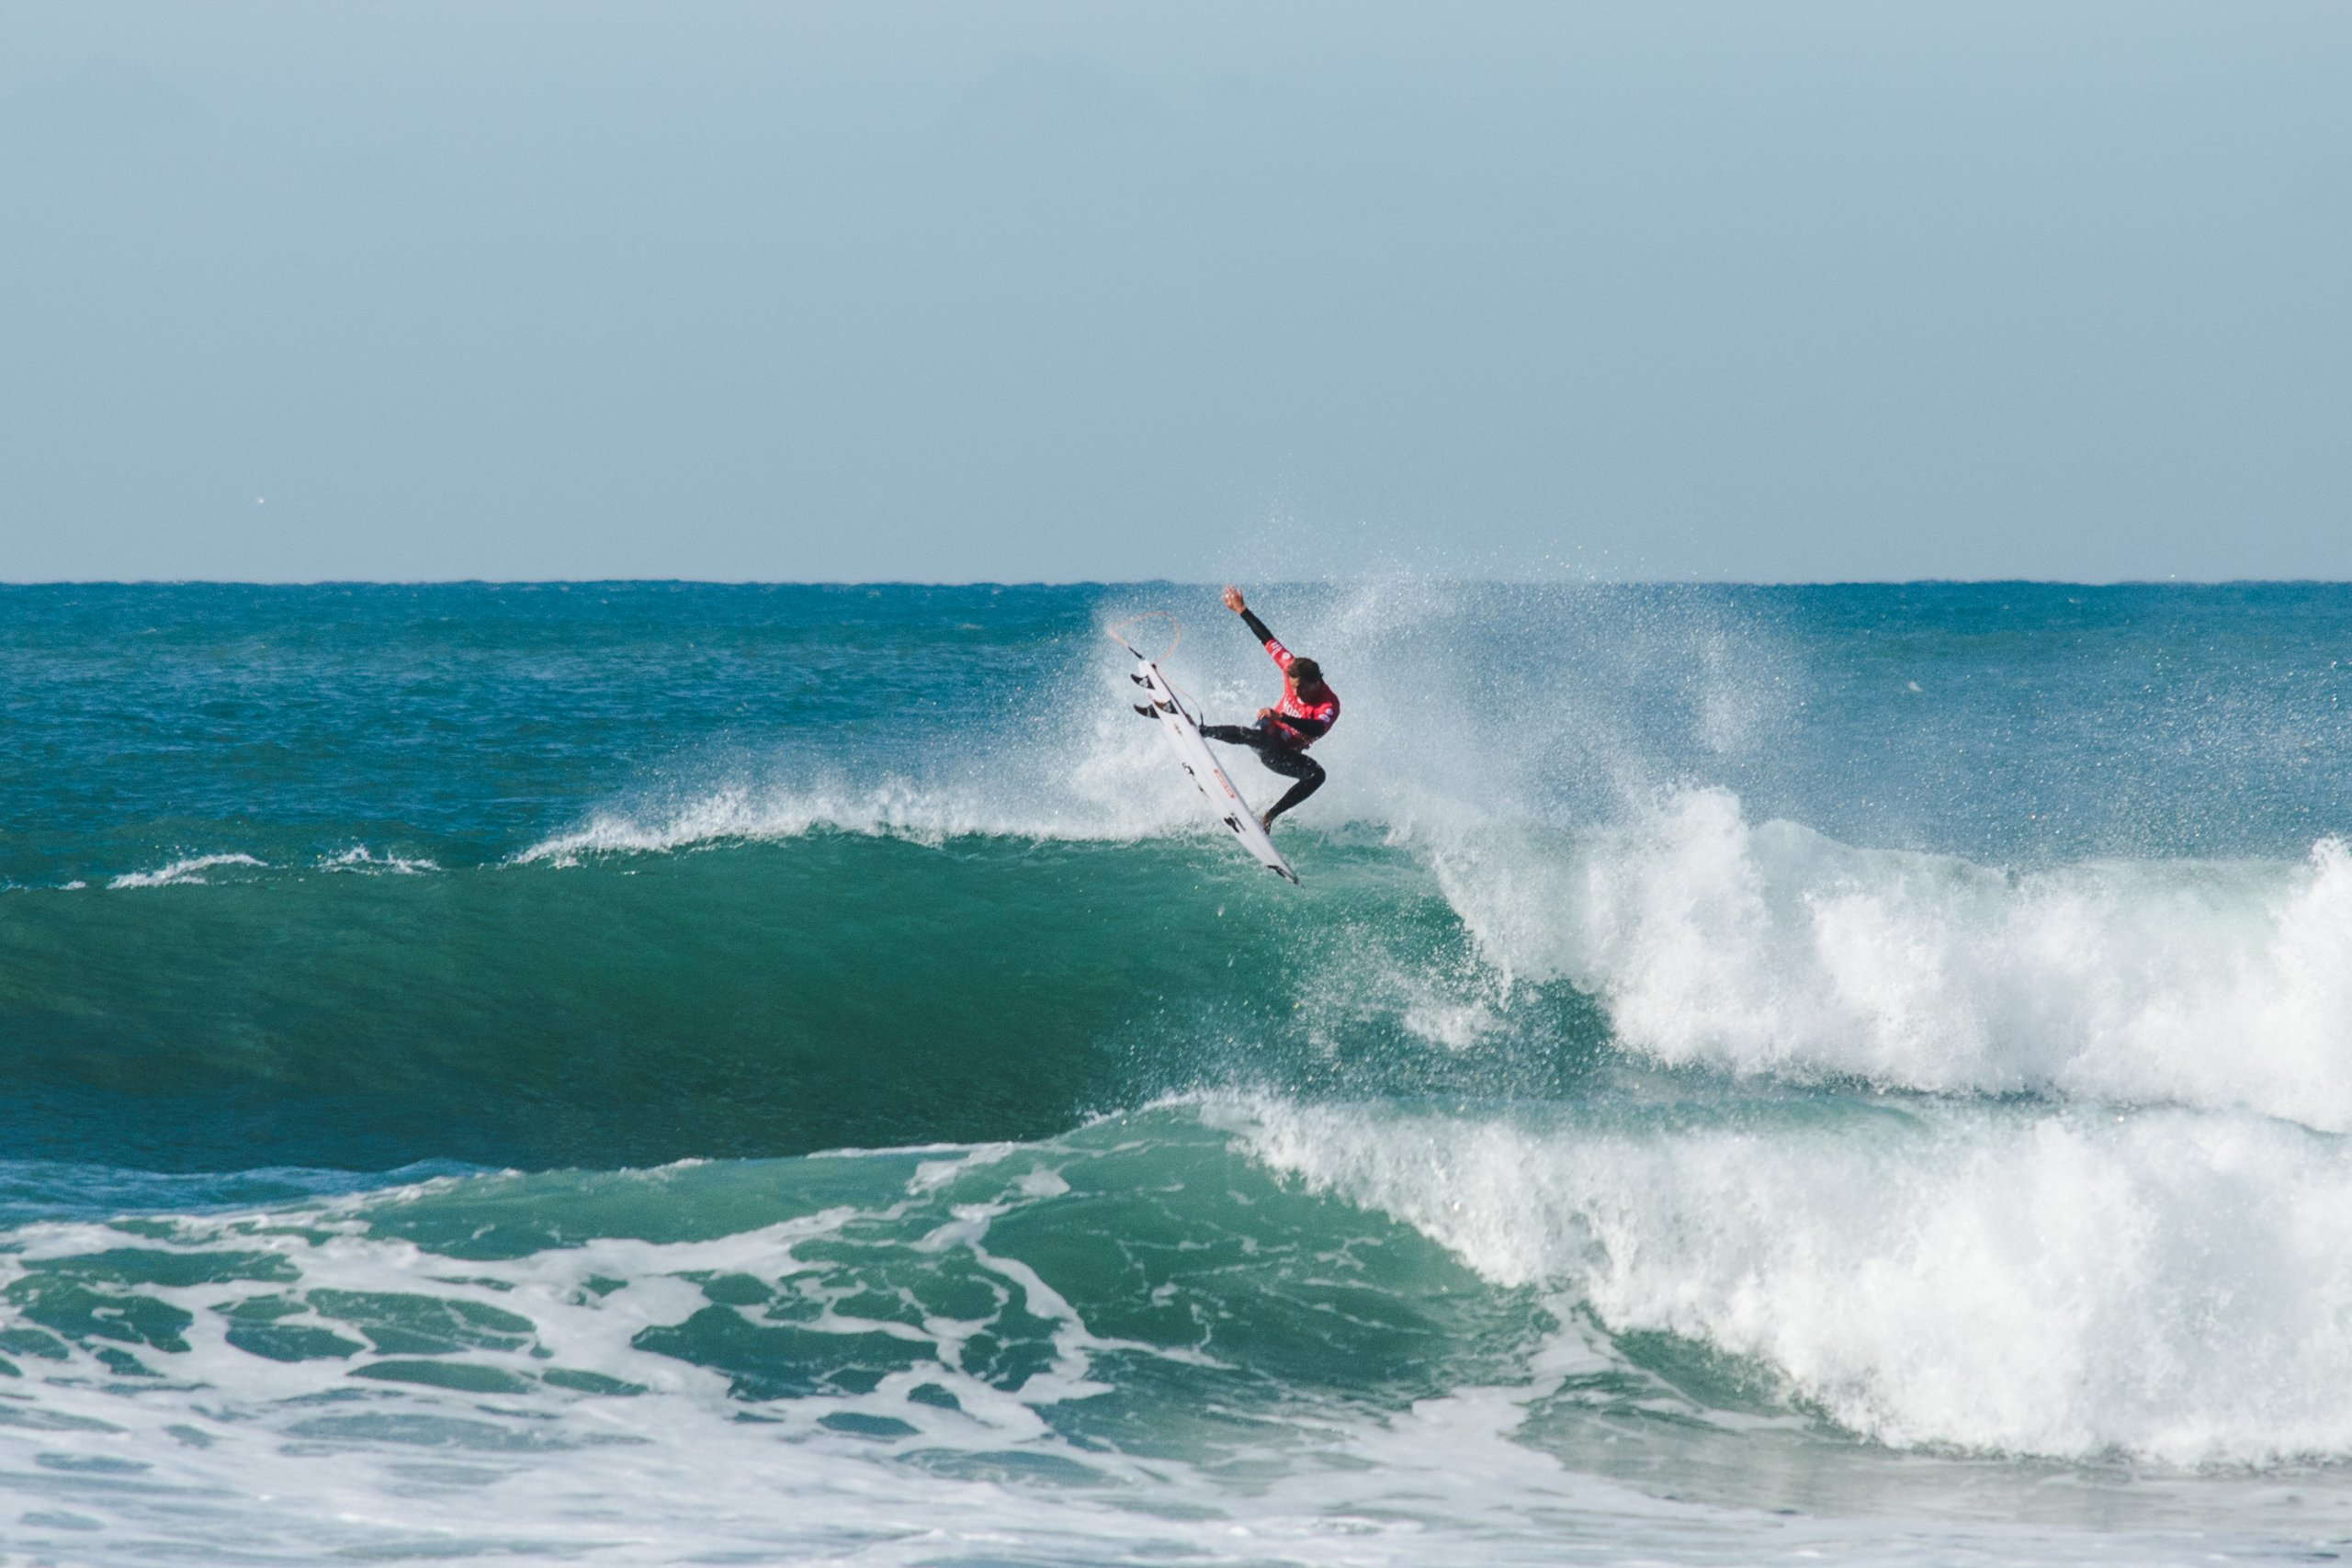 Ribeira d Ilhas Will Host the First Leg of the Liga Meo Surf 2021